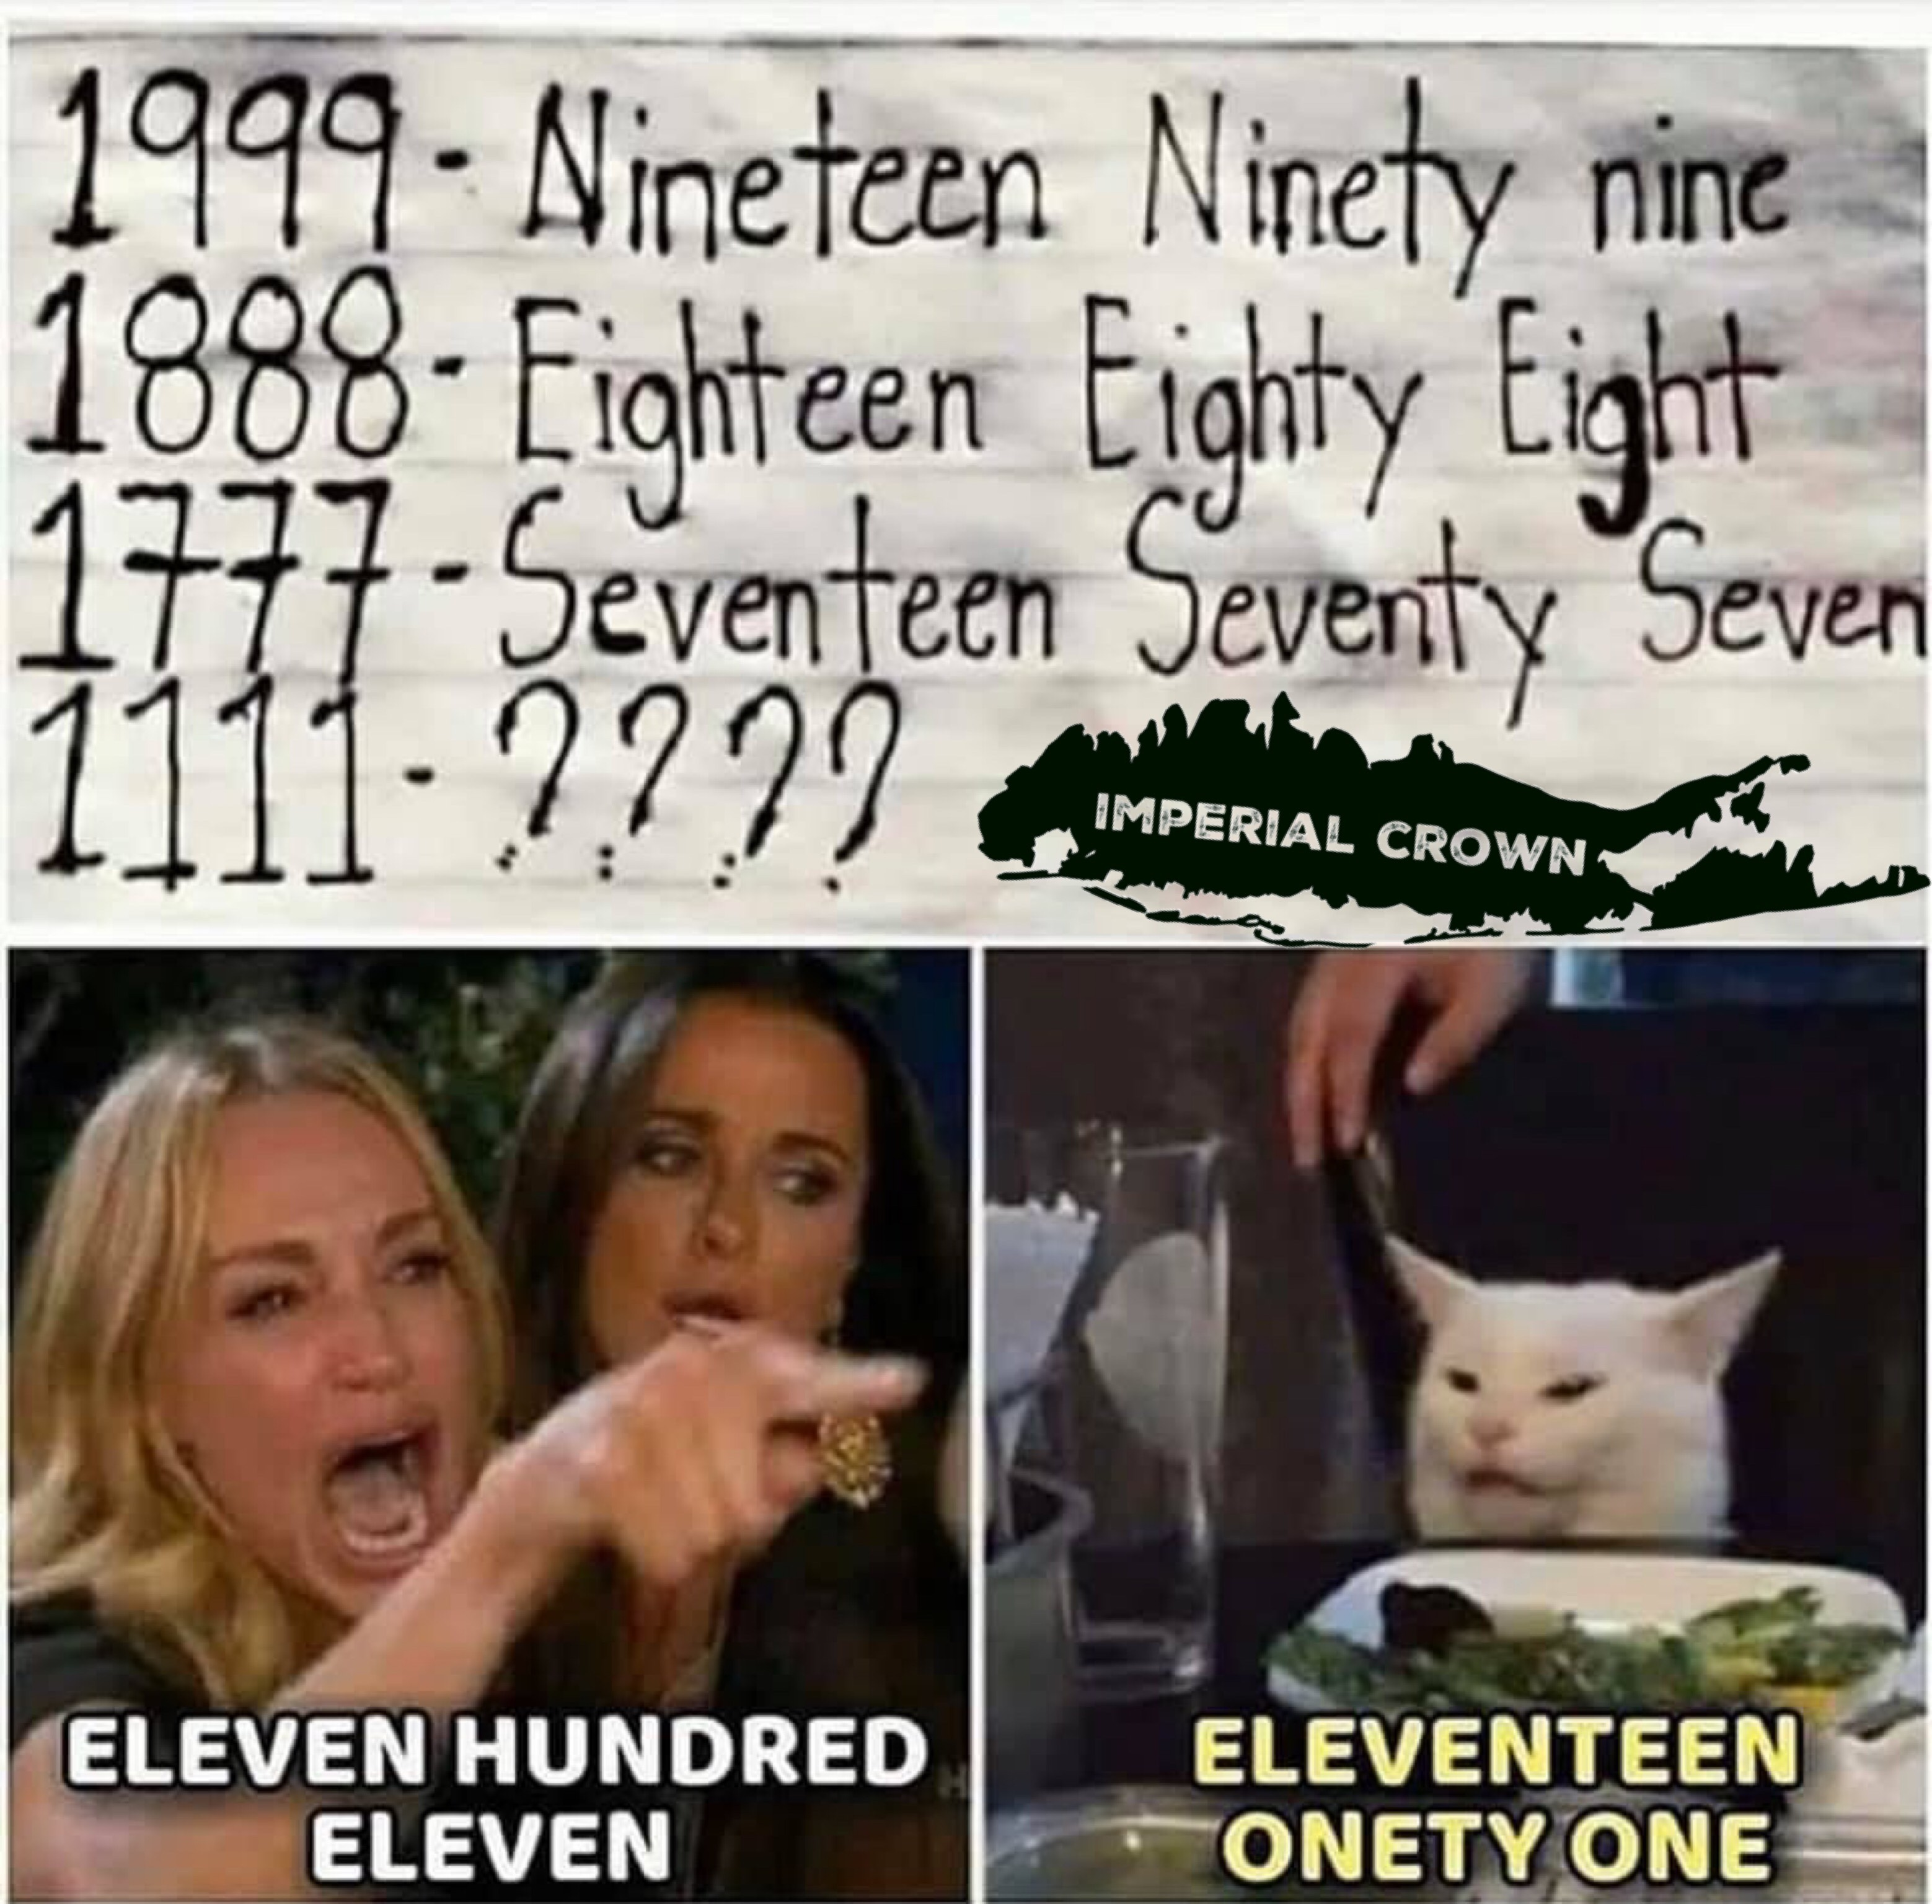 Finish the riddle nineteen ninety nine eighteen eighty eight seventeen seventy seven what goes next